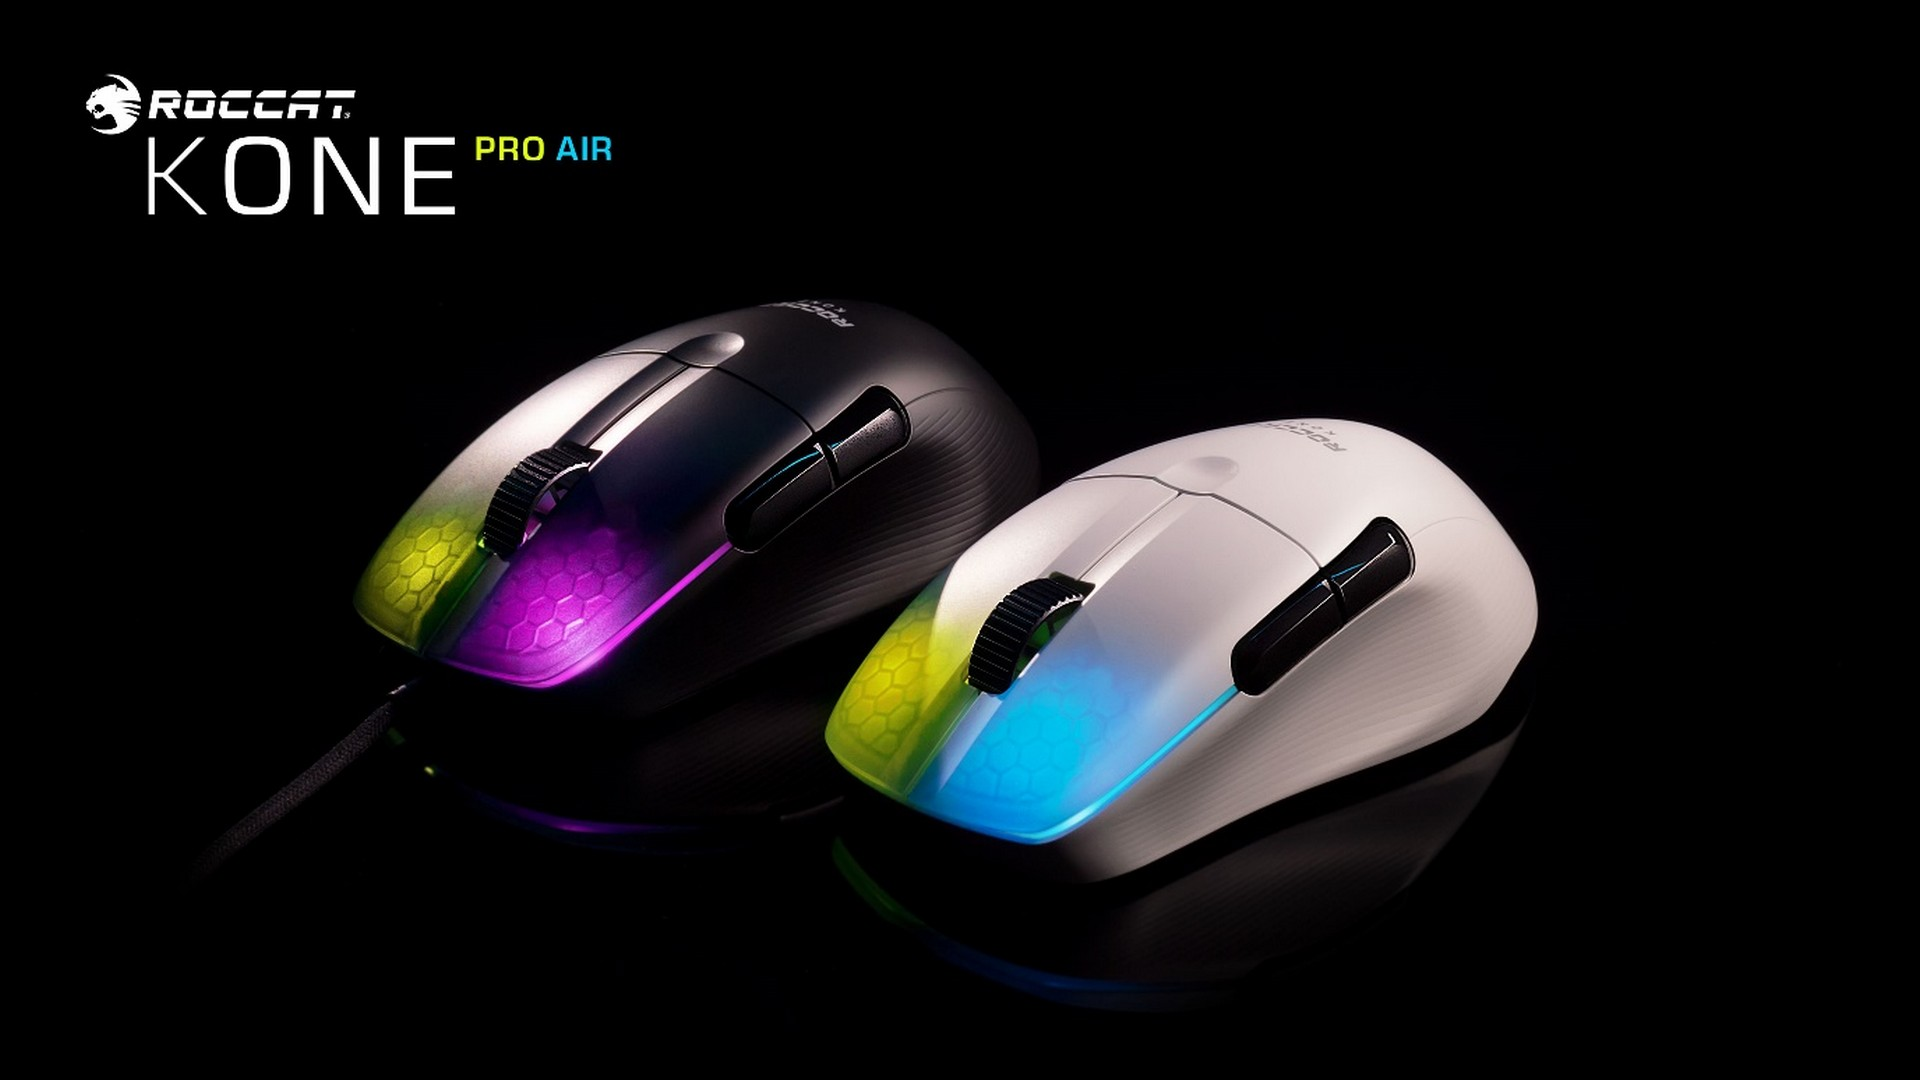 The Kone Pro, ROCCAT's Most Pre-Ordered Gaming Mouse Now Available At Australian retailers